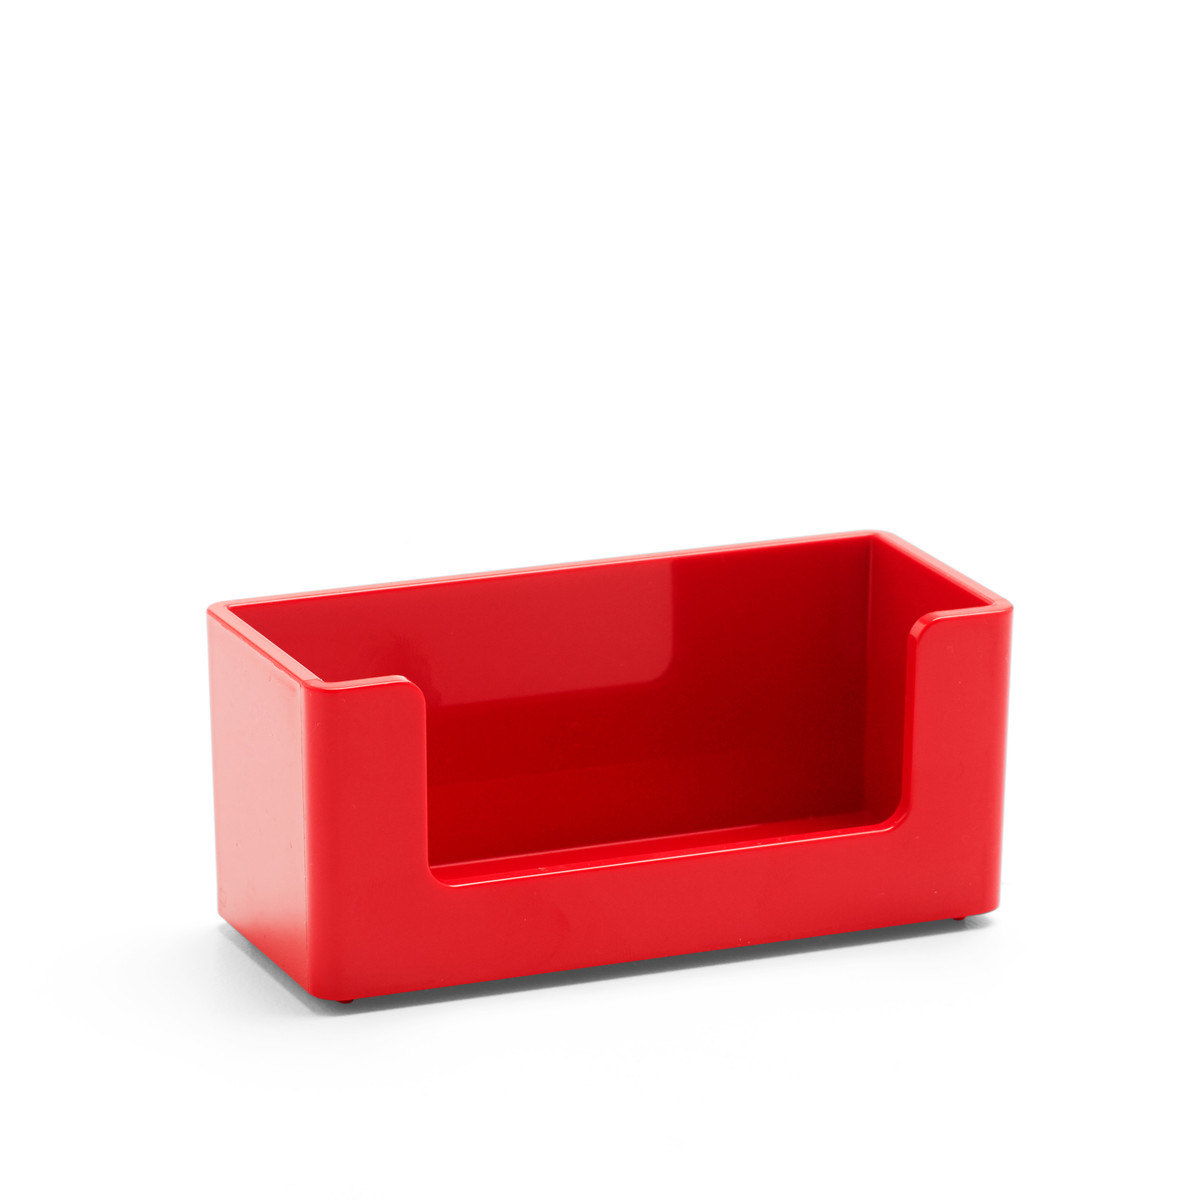 Red Business Card Holder | Desk Accessories| Poppin